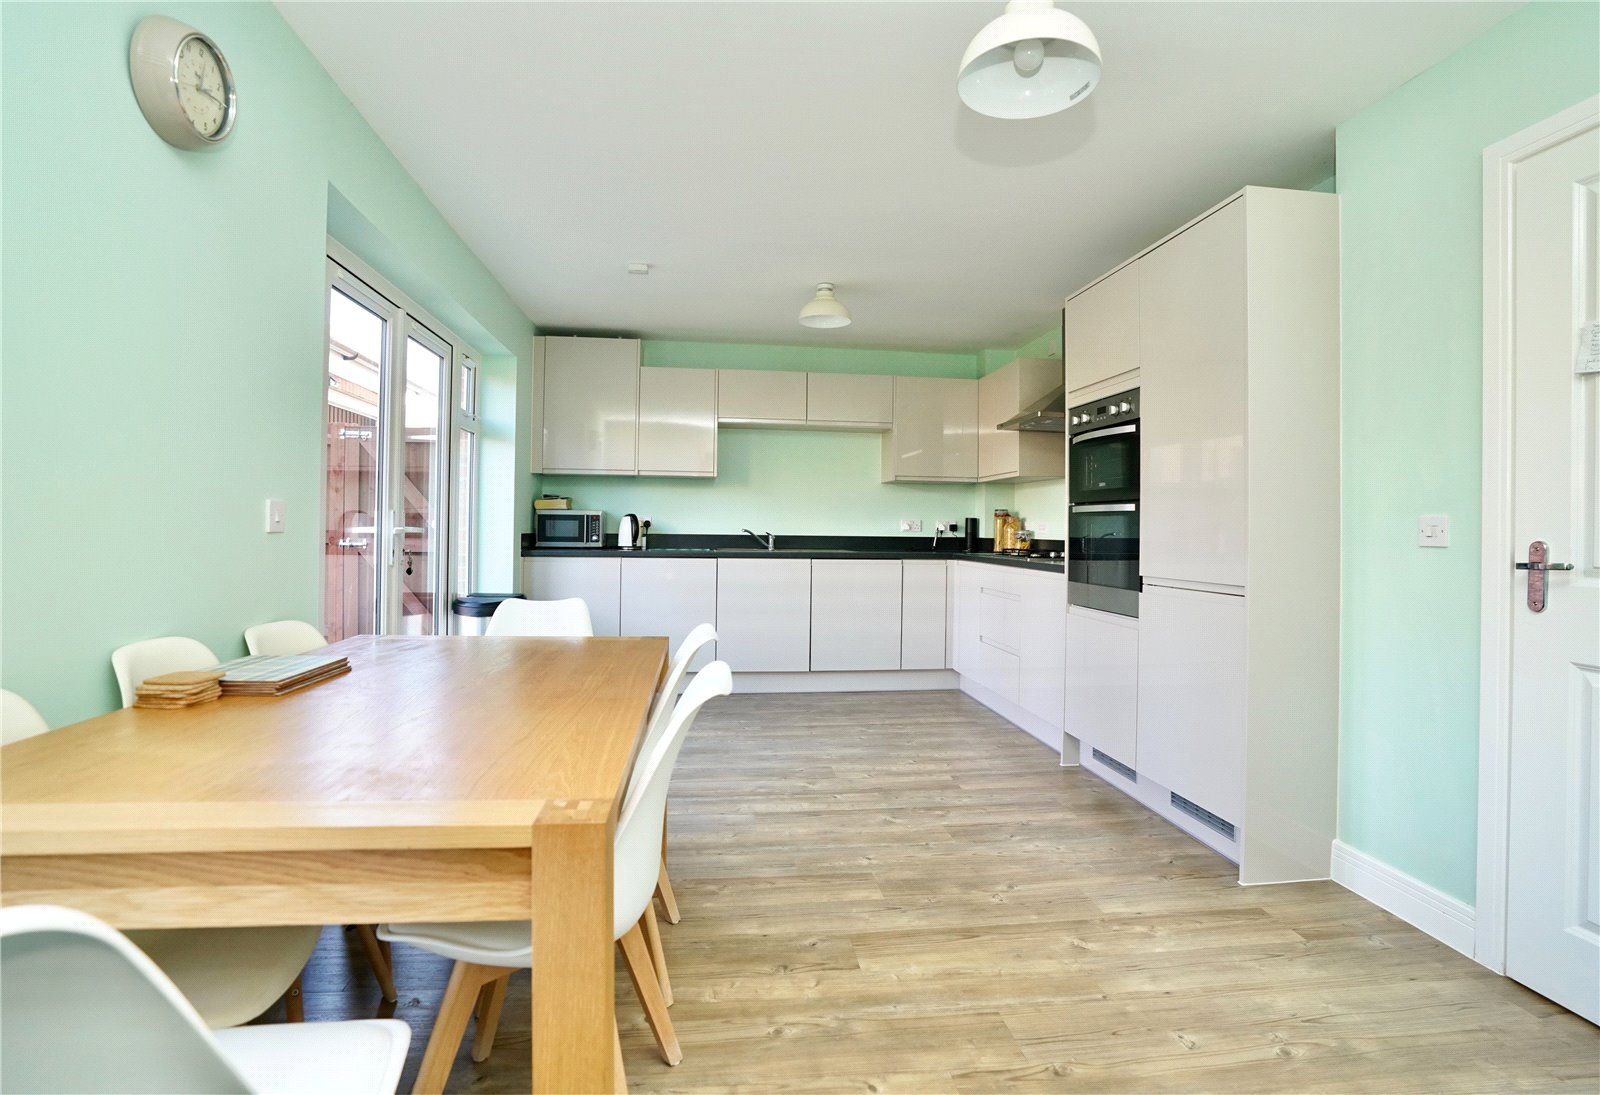 4 bed house for sale in Whinfell Close, Eaton Socon 3